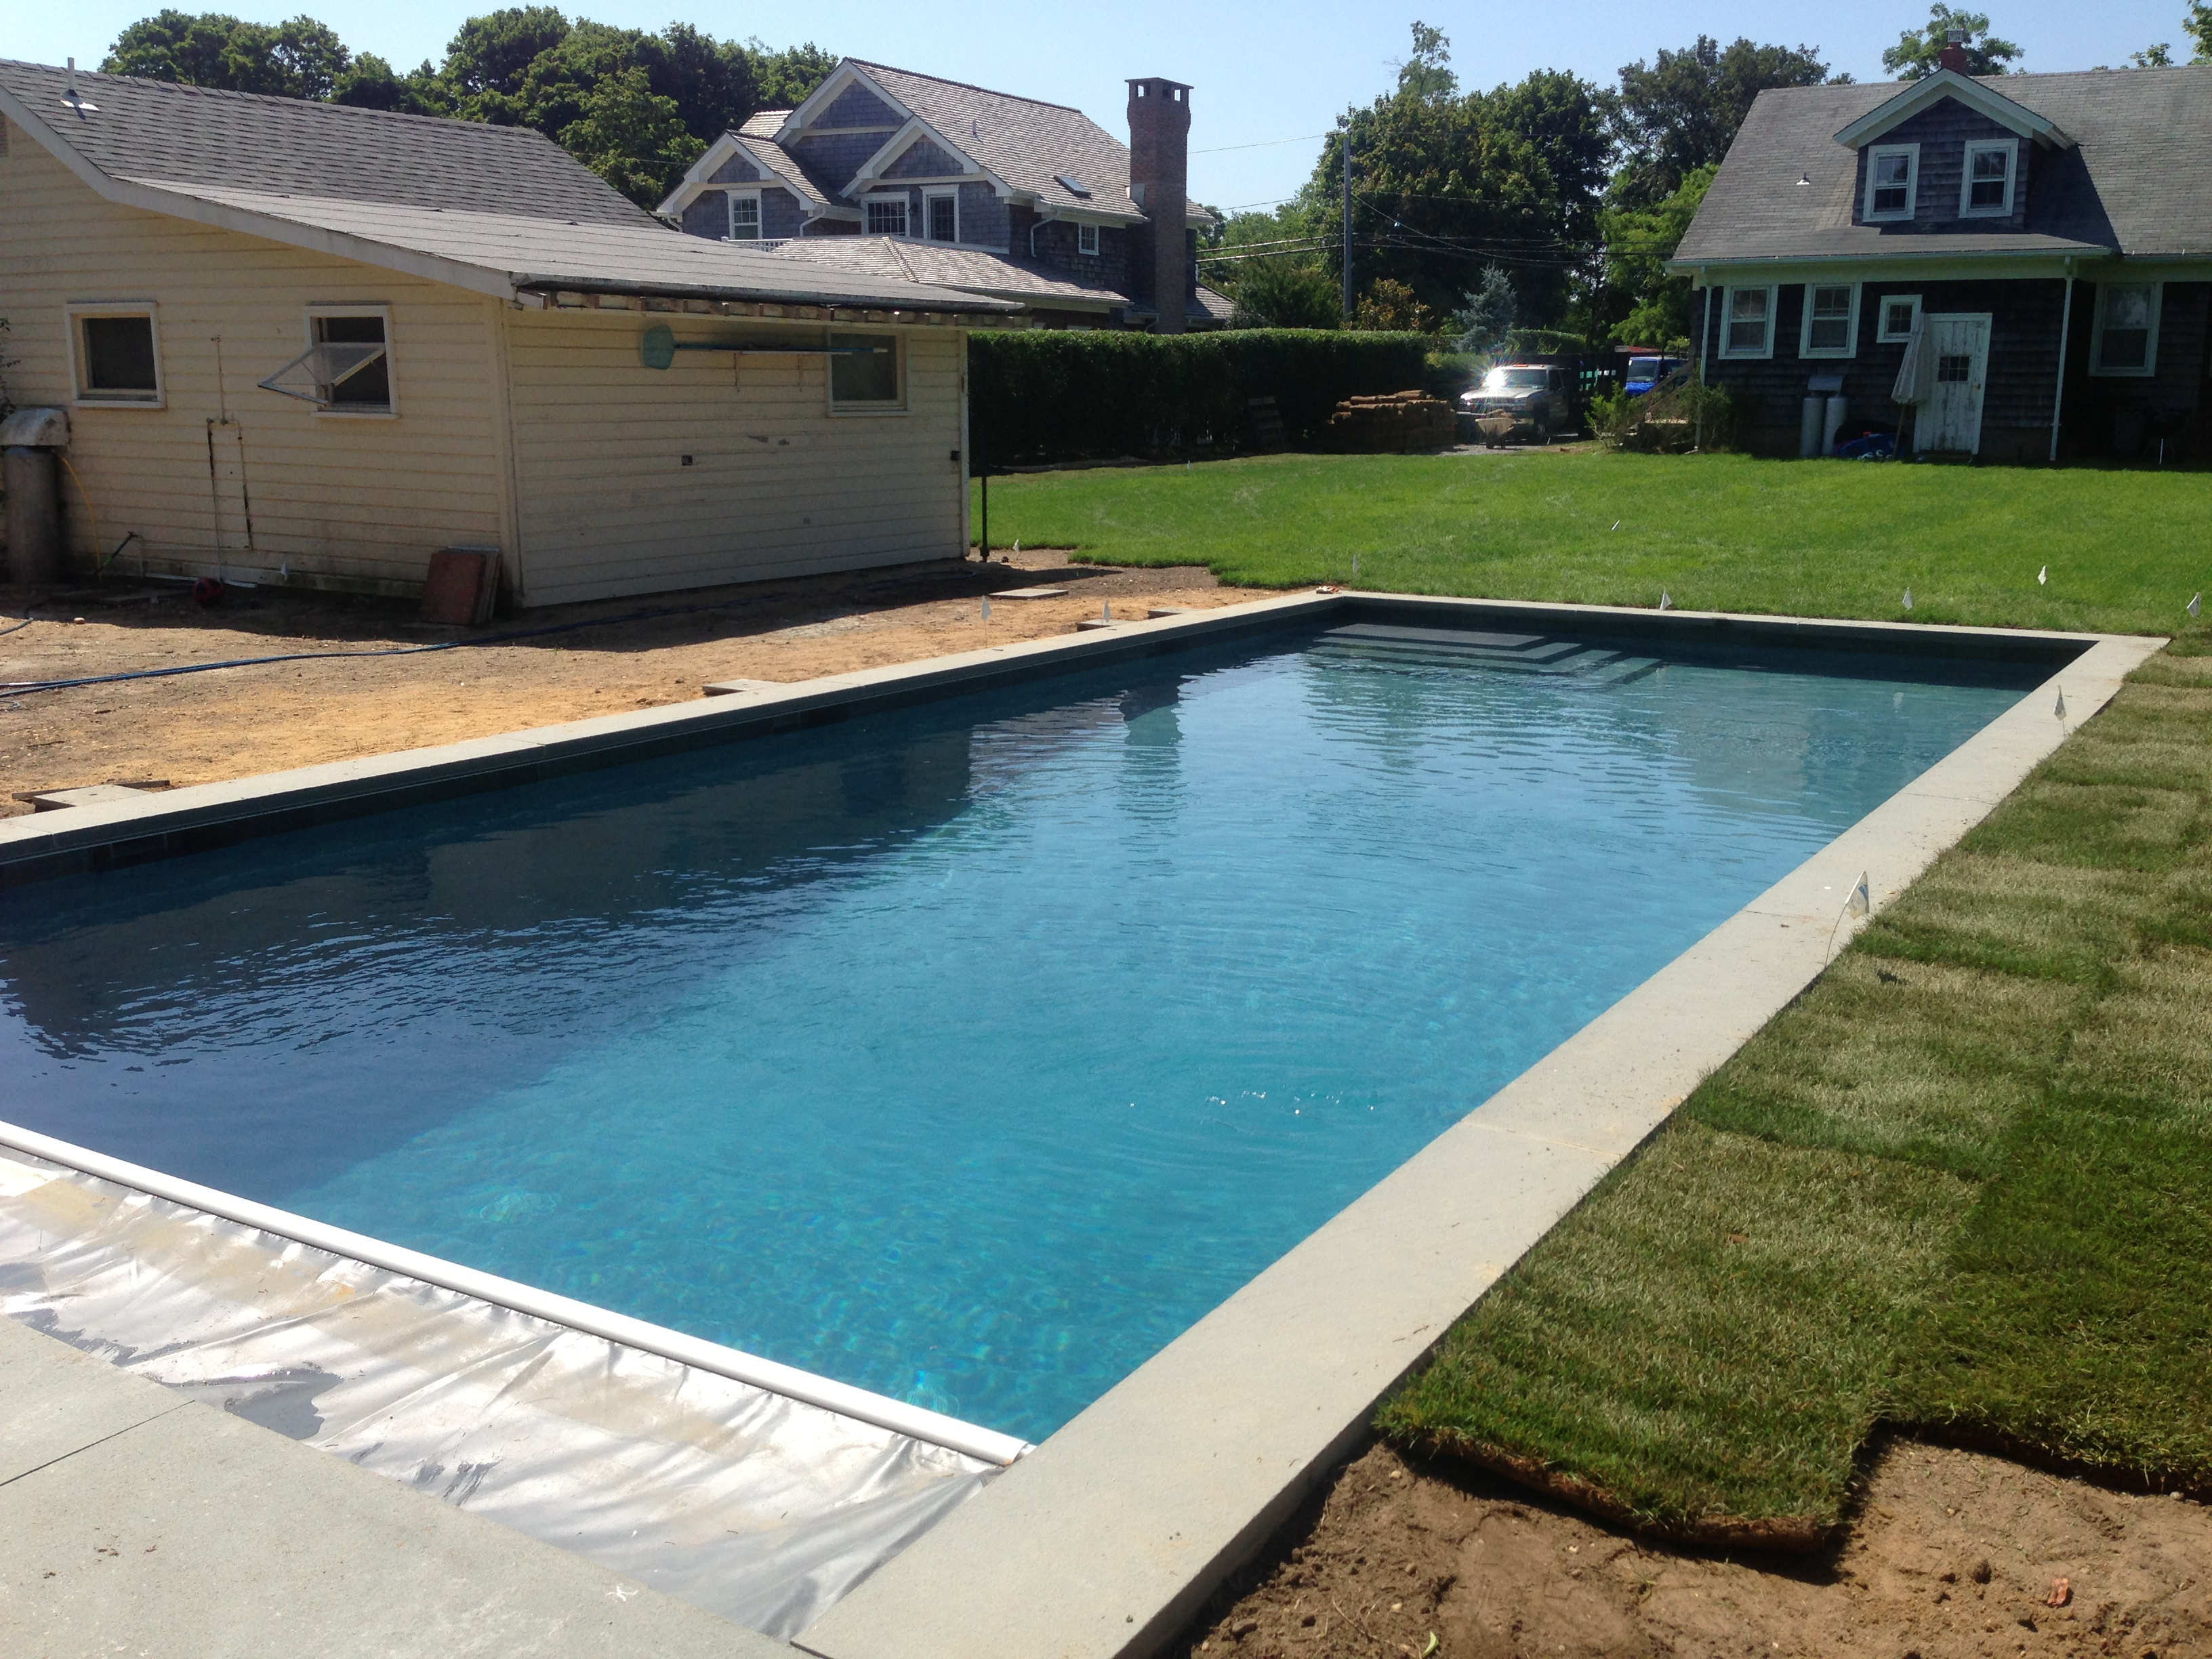 CoverStar pool cover safety Long Island